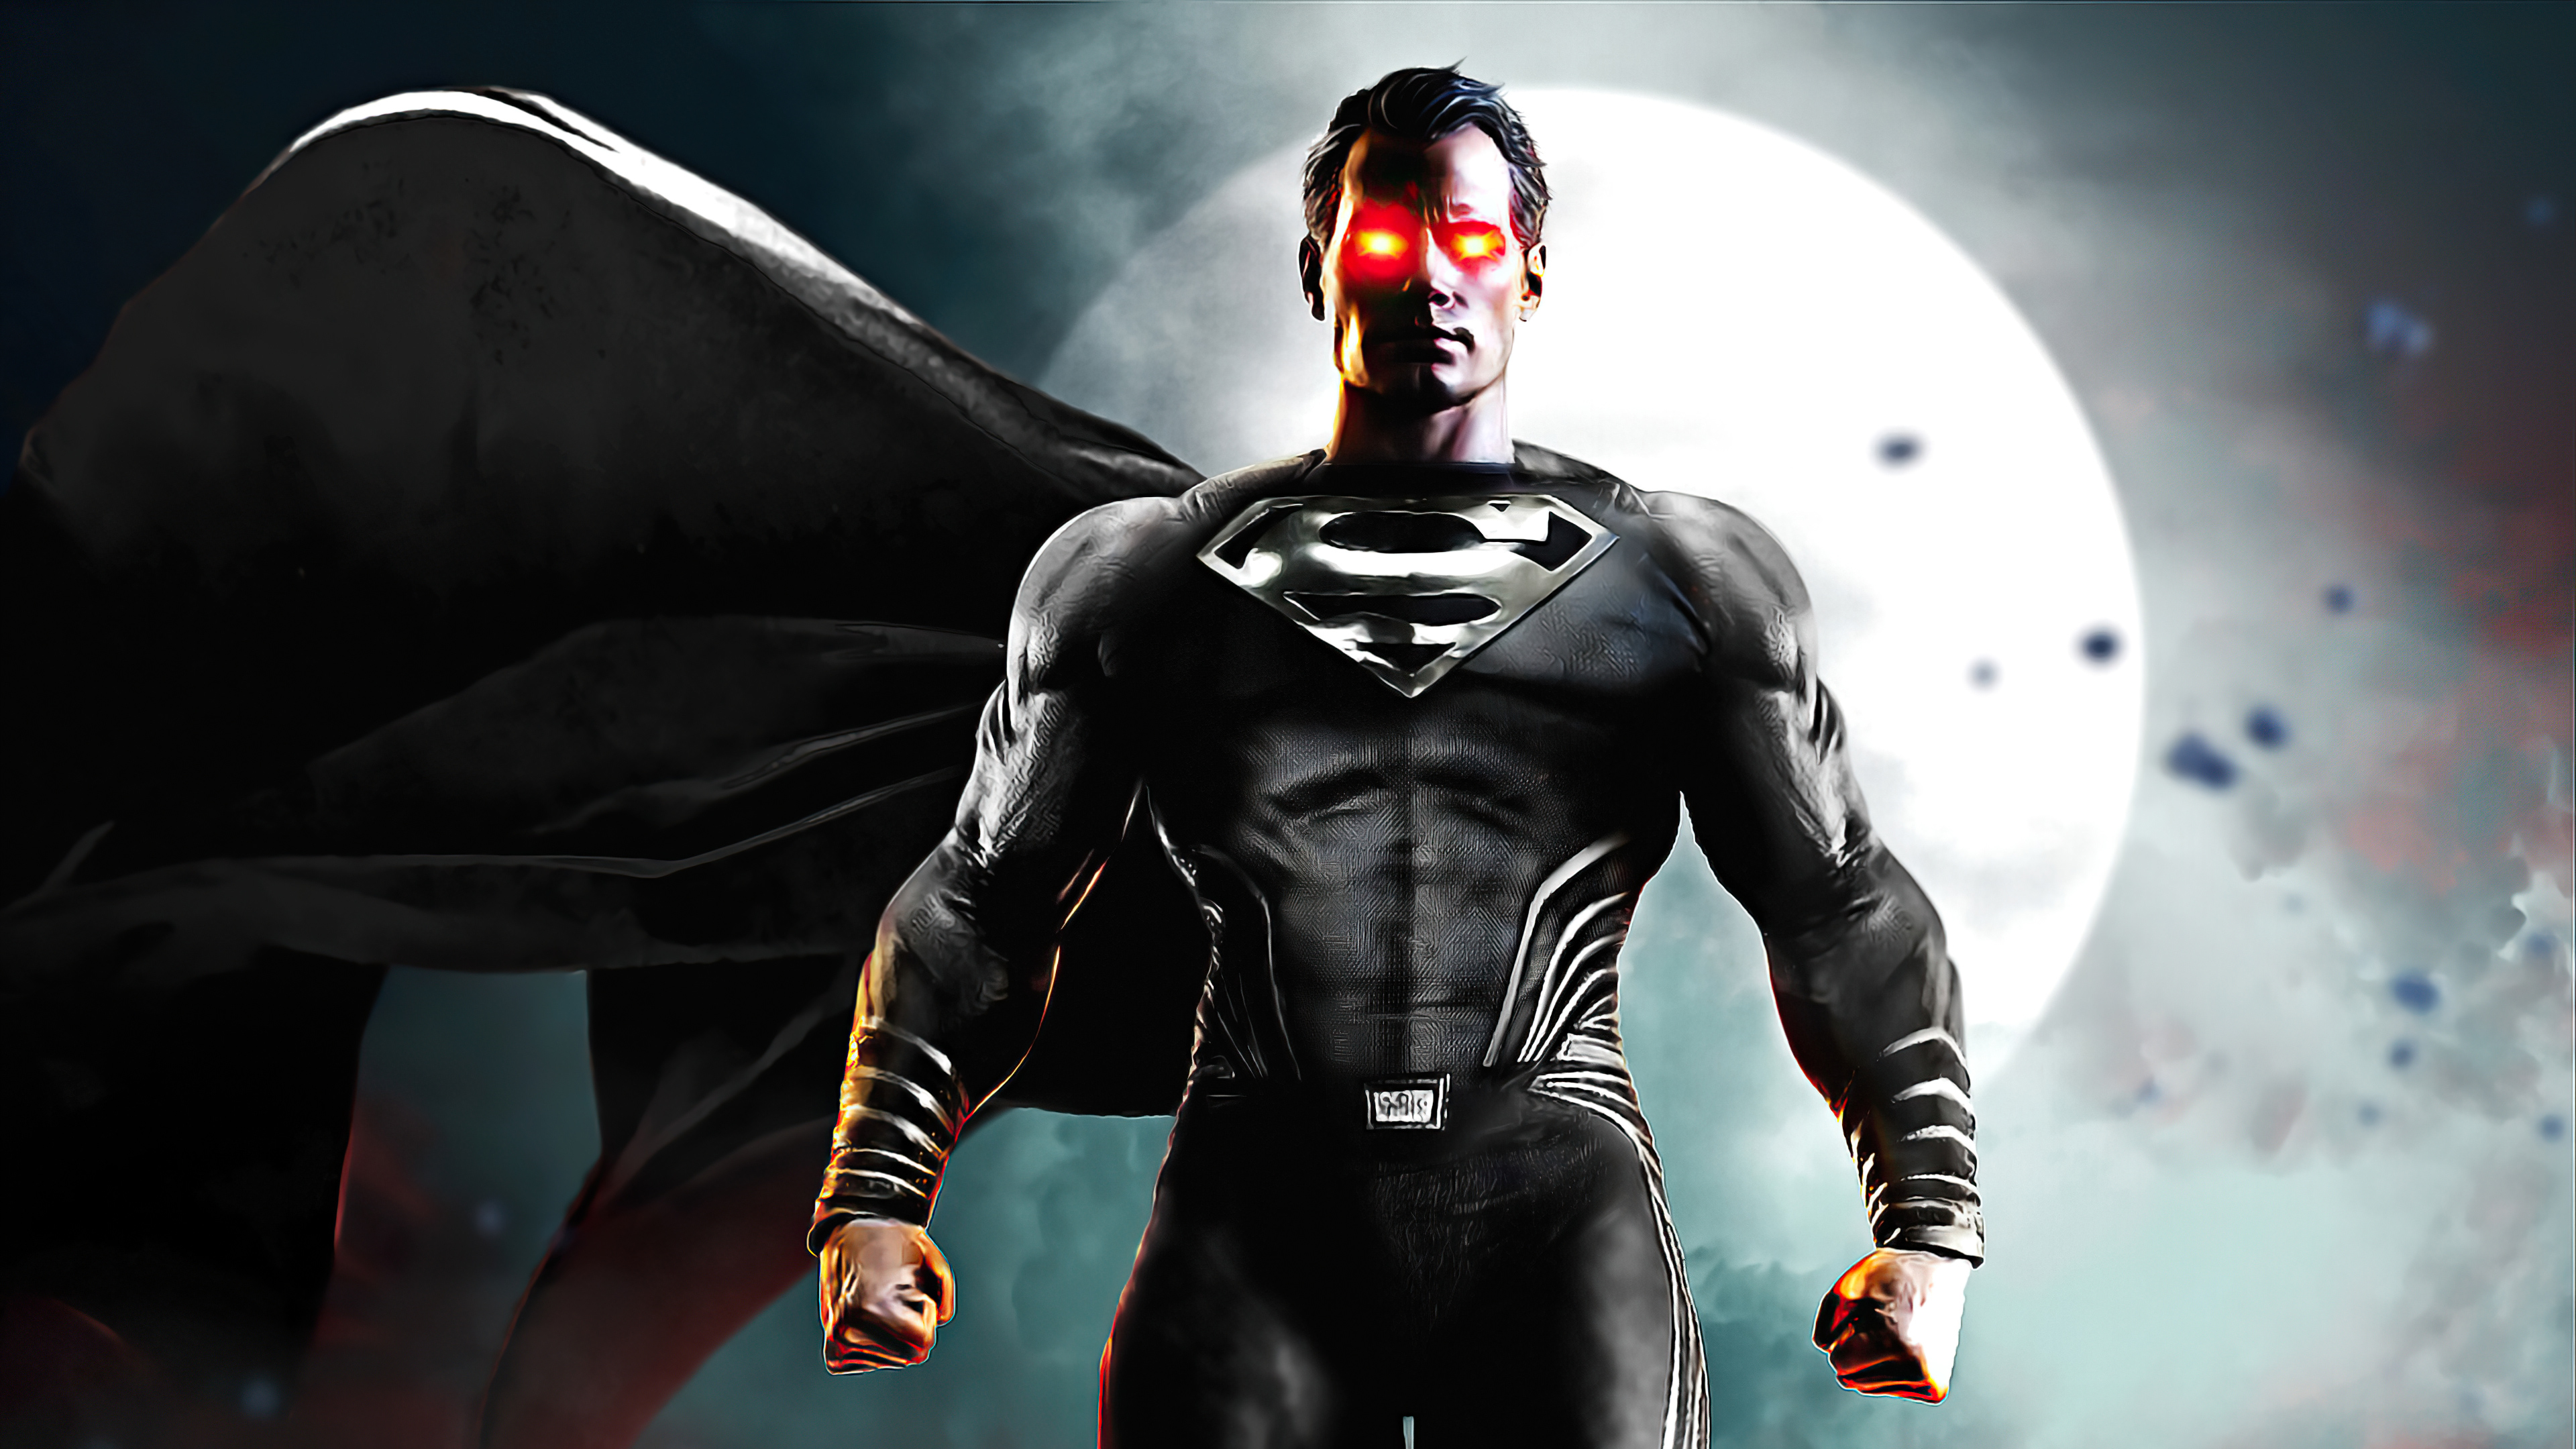 zack synder justice league black suit superman 4k 1618165496 - Zack Synder Justice League Black Suit Superman 4k - Zack Synder Justice League Black Suit Superman 4k wallpapers